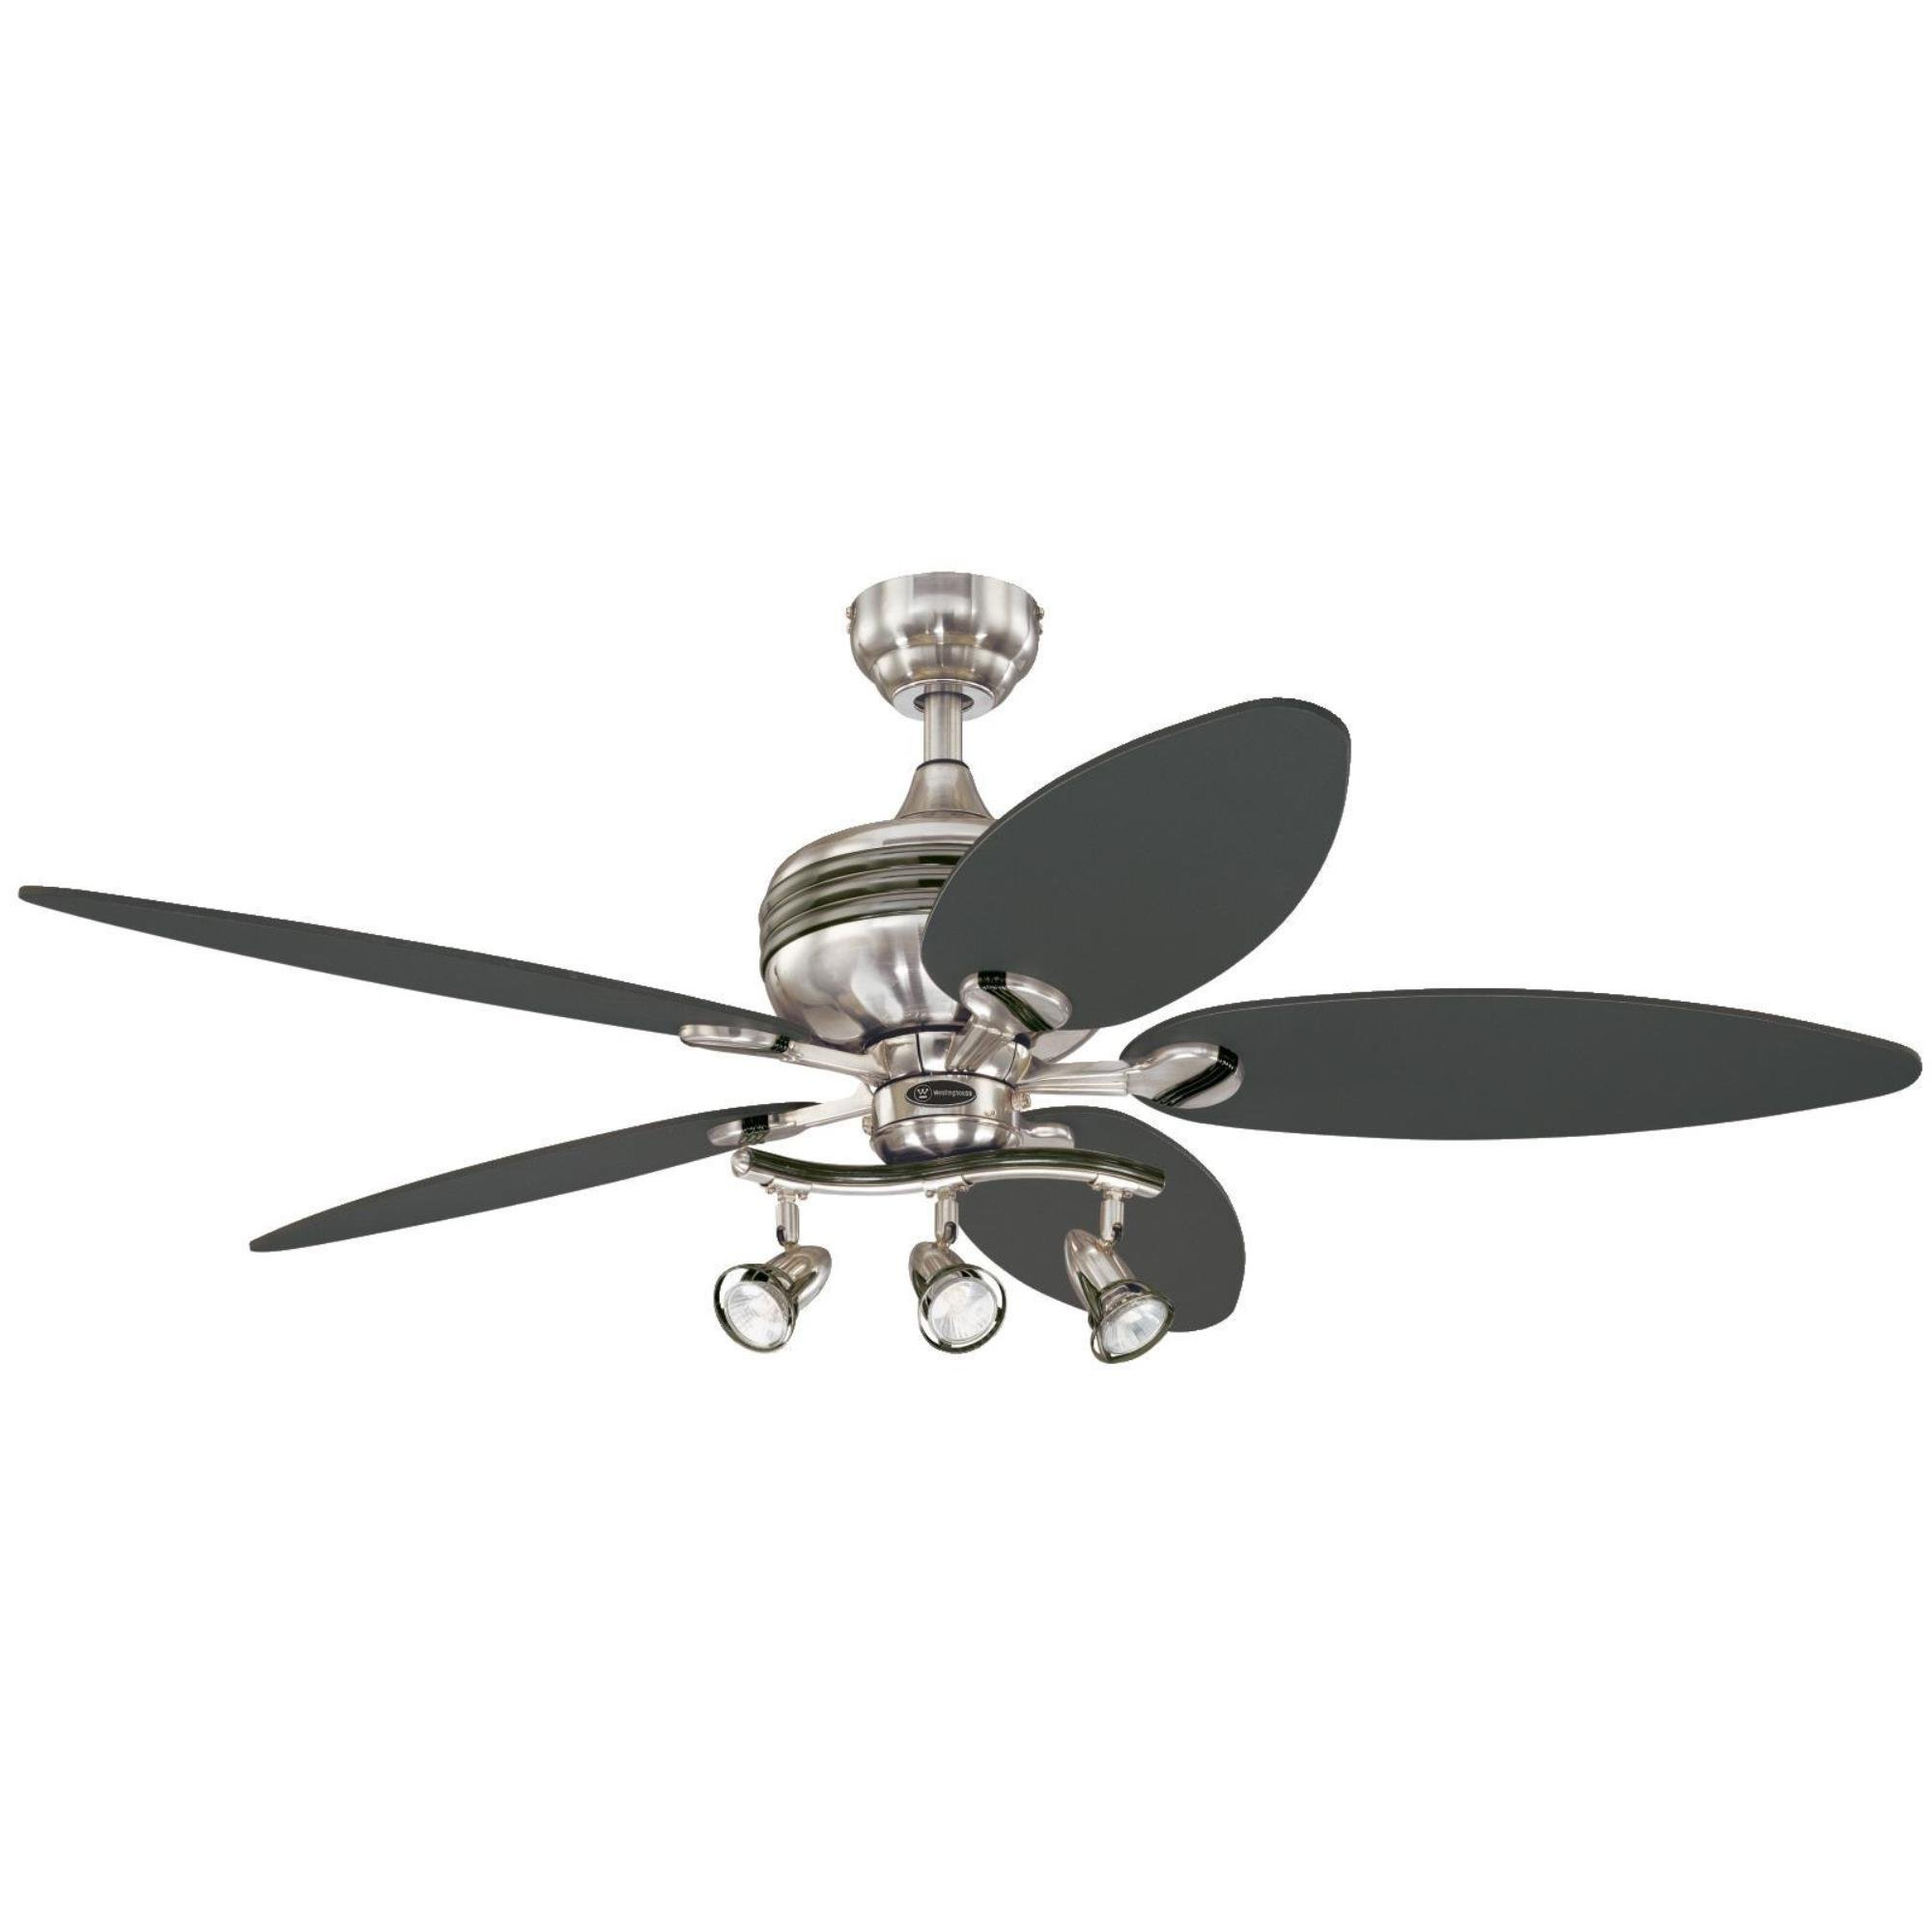 Westinghouse 7234220 Xavier II 52-Inch Five-Blade Indoor Ceiling Fan with Three Spot Lights, Brushed Nickel with Gun Metal Accents by Westinghouse